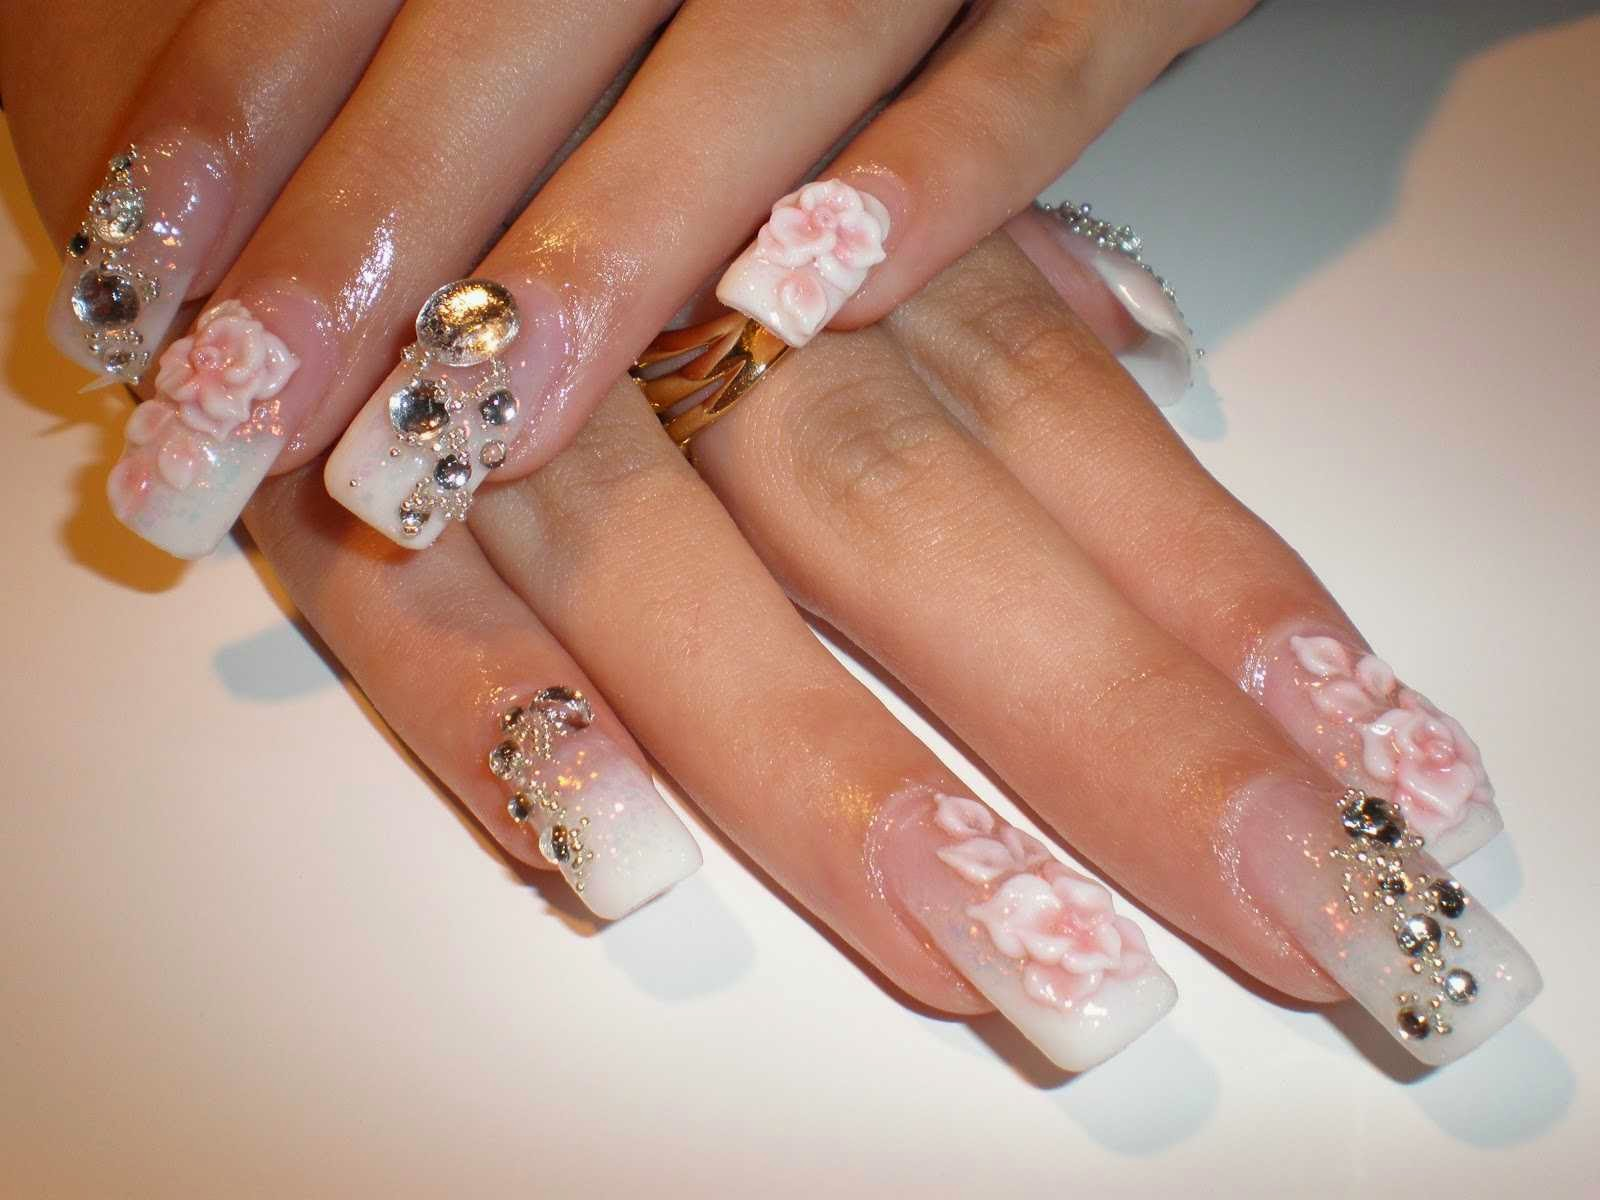 Very cute nails art image download free all hd - Nails wallpaper download ...